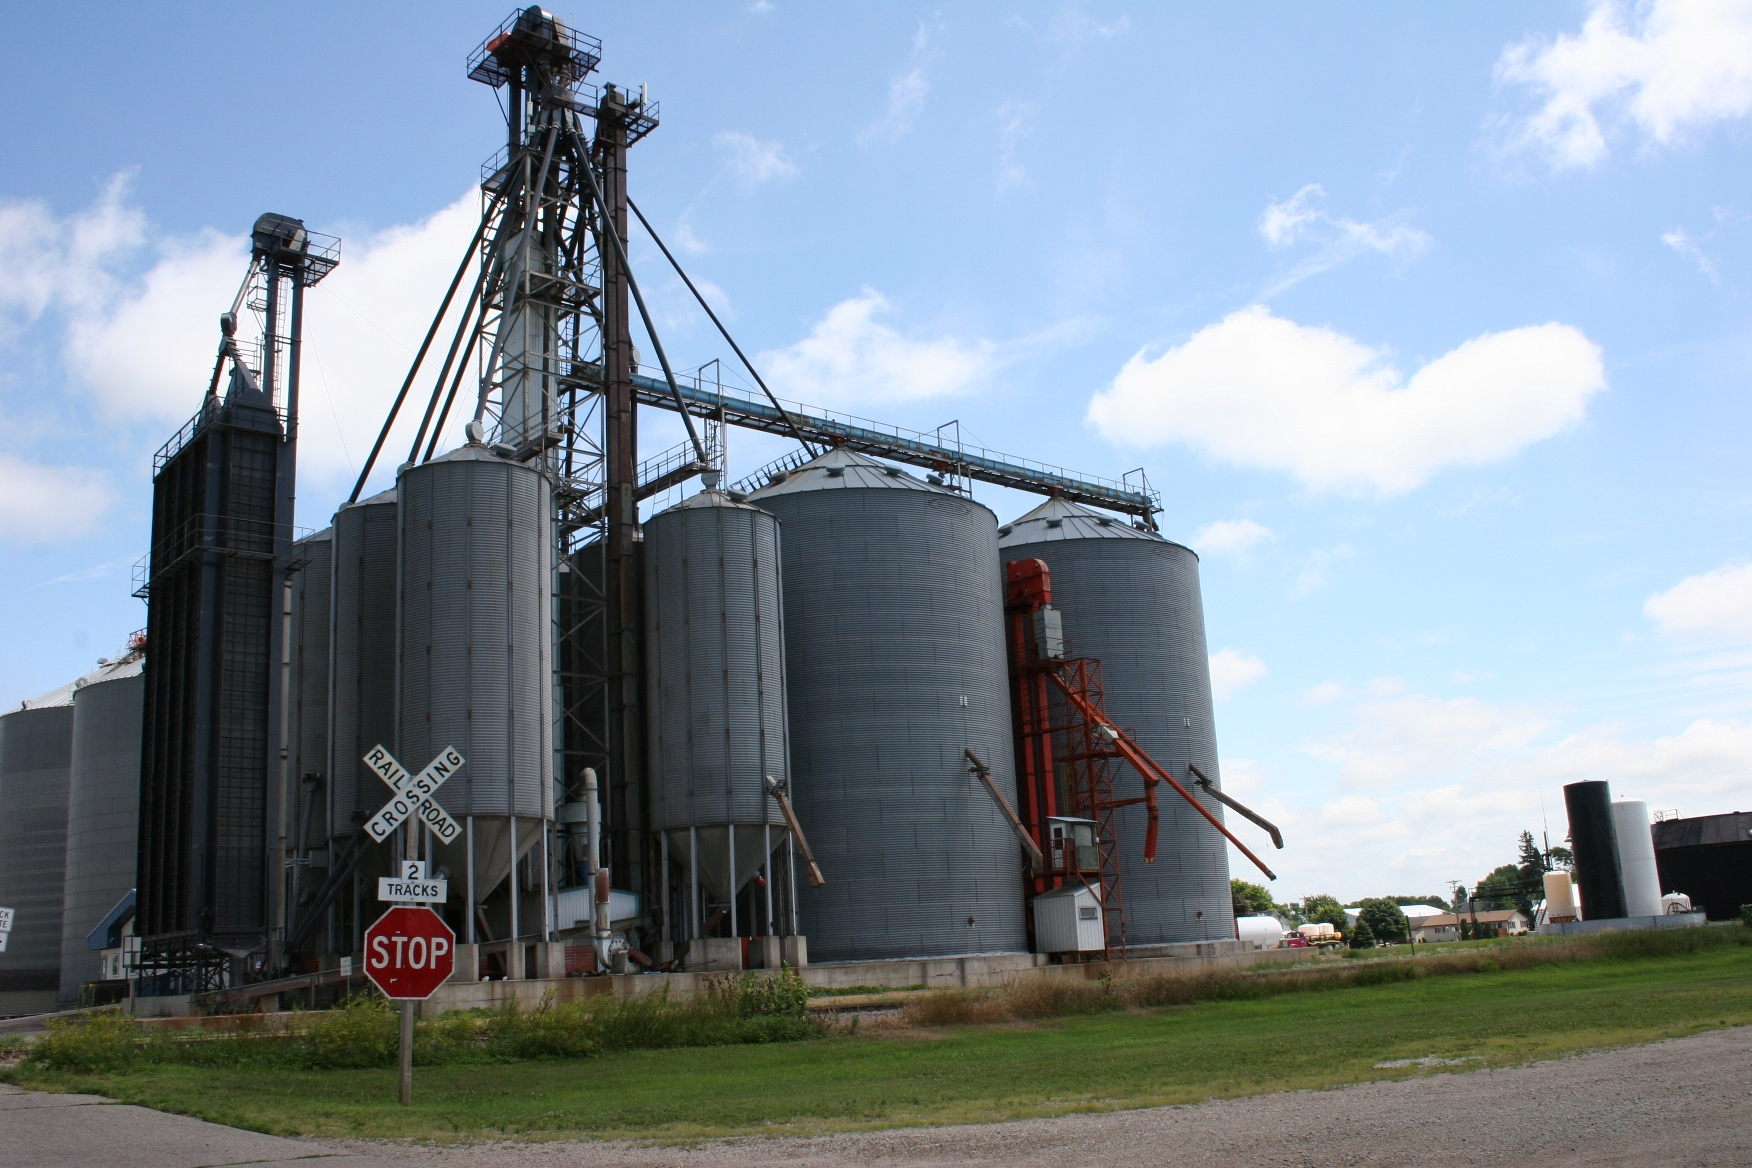 Cluster of grain bins in the heart of new richland